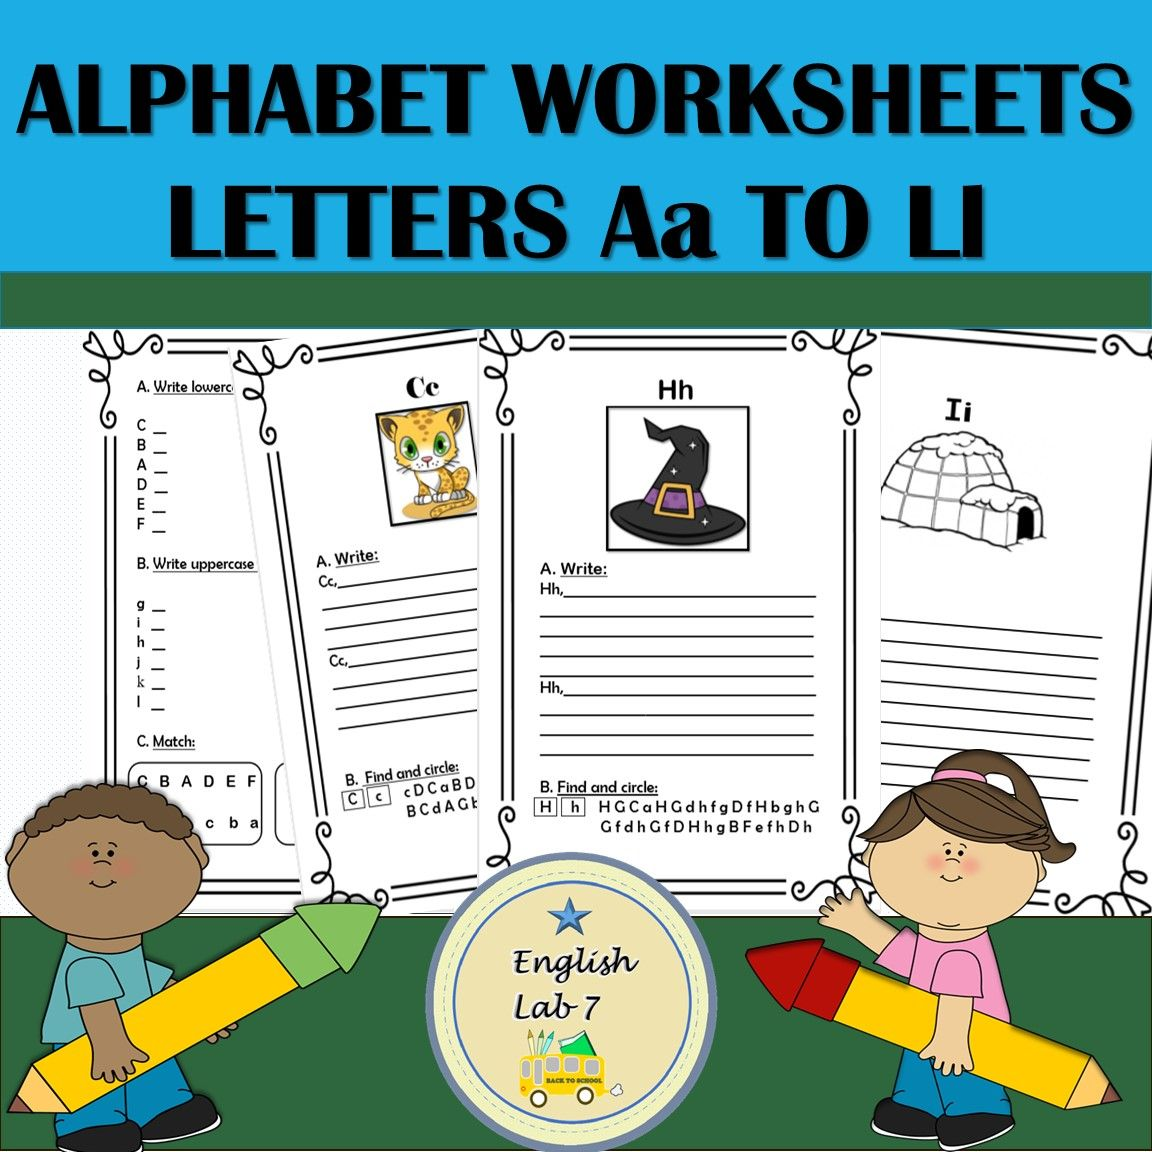 Alphabet Letters A To L Writing Practice Worksheets Writing Practice Worksheets Writing Practice Practices Worksheets